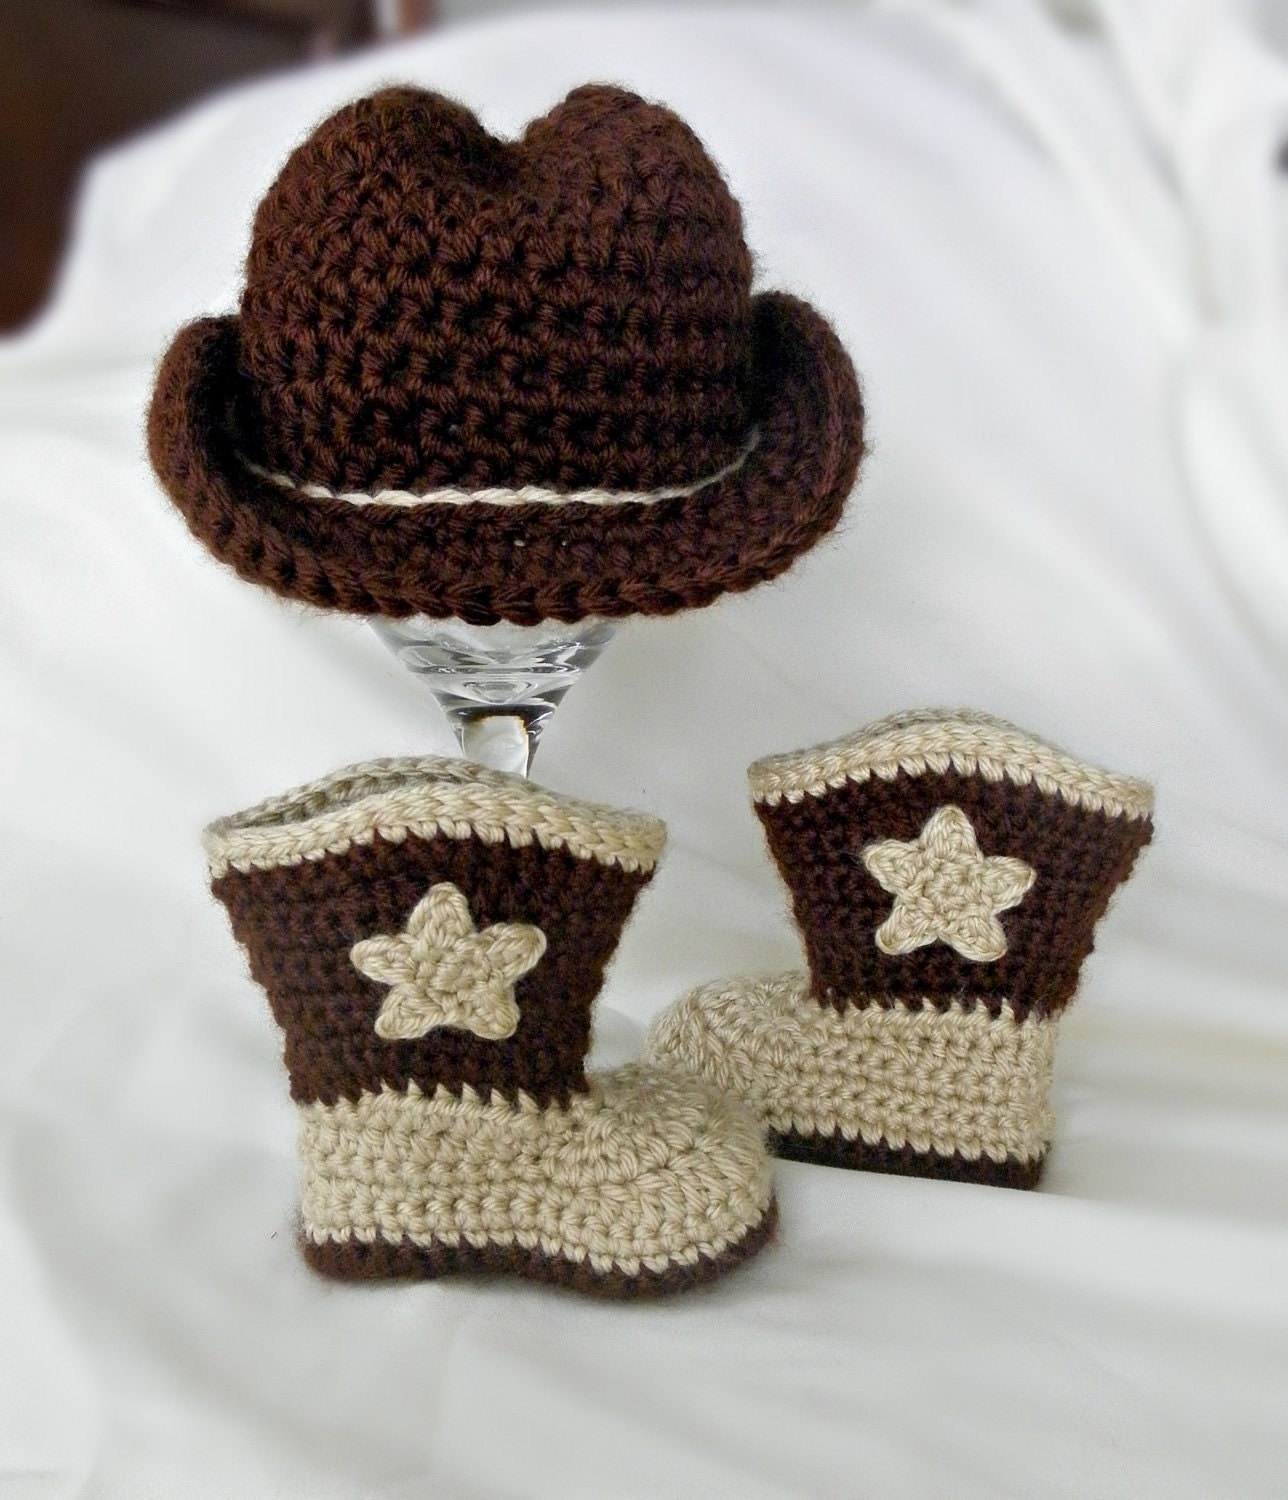 Free Crochet Pattern Baby Cowboy Boots : Free Crochet Pattern Baby Cowboy Boots - Hot Girls Wallpaper